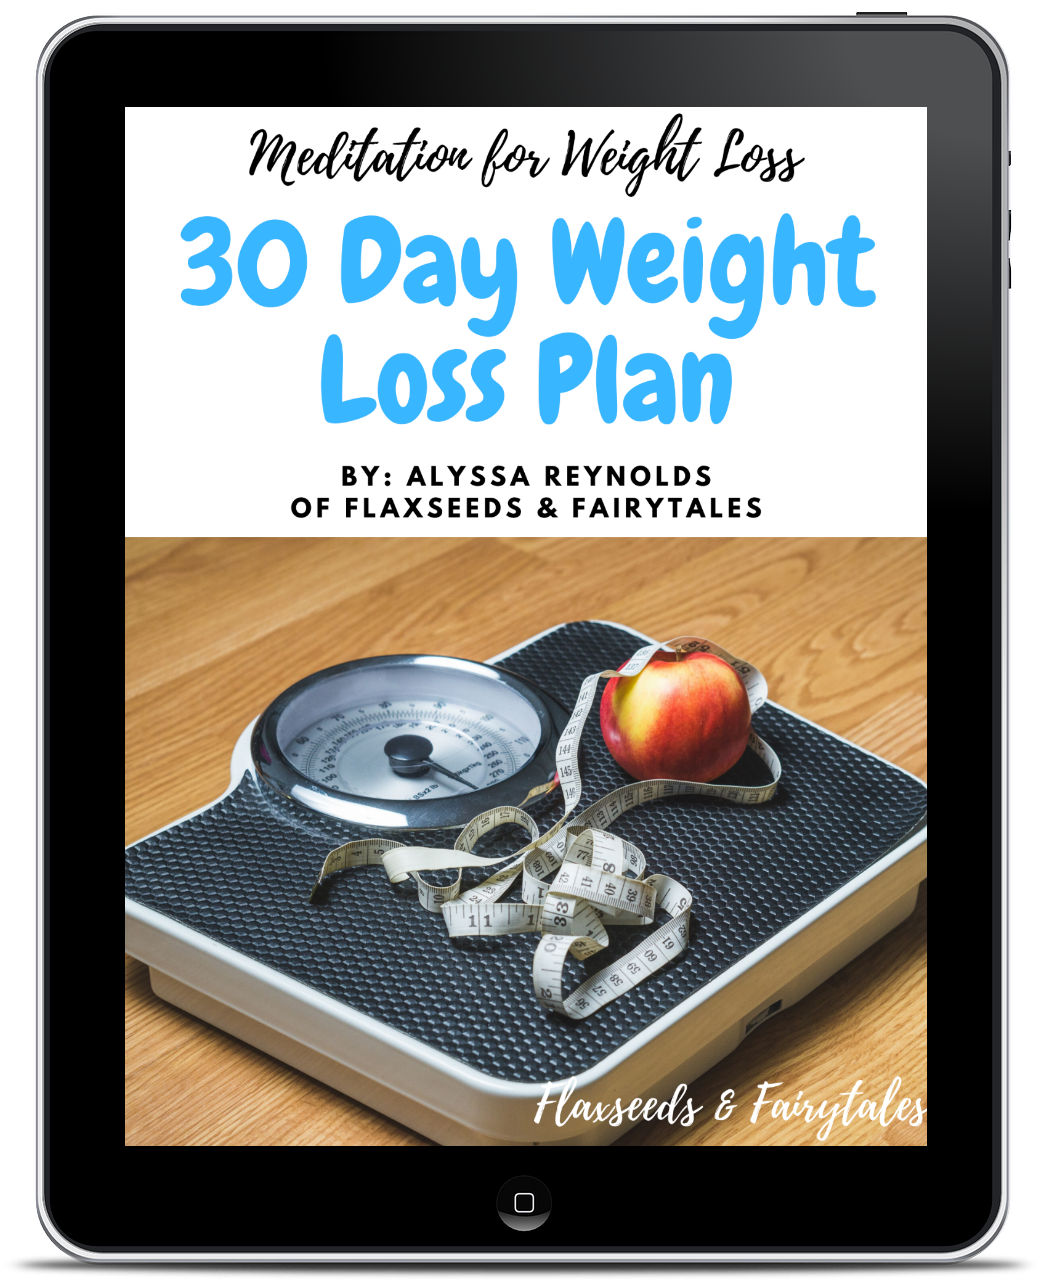 Meditation for Weight Loss in 30 Days